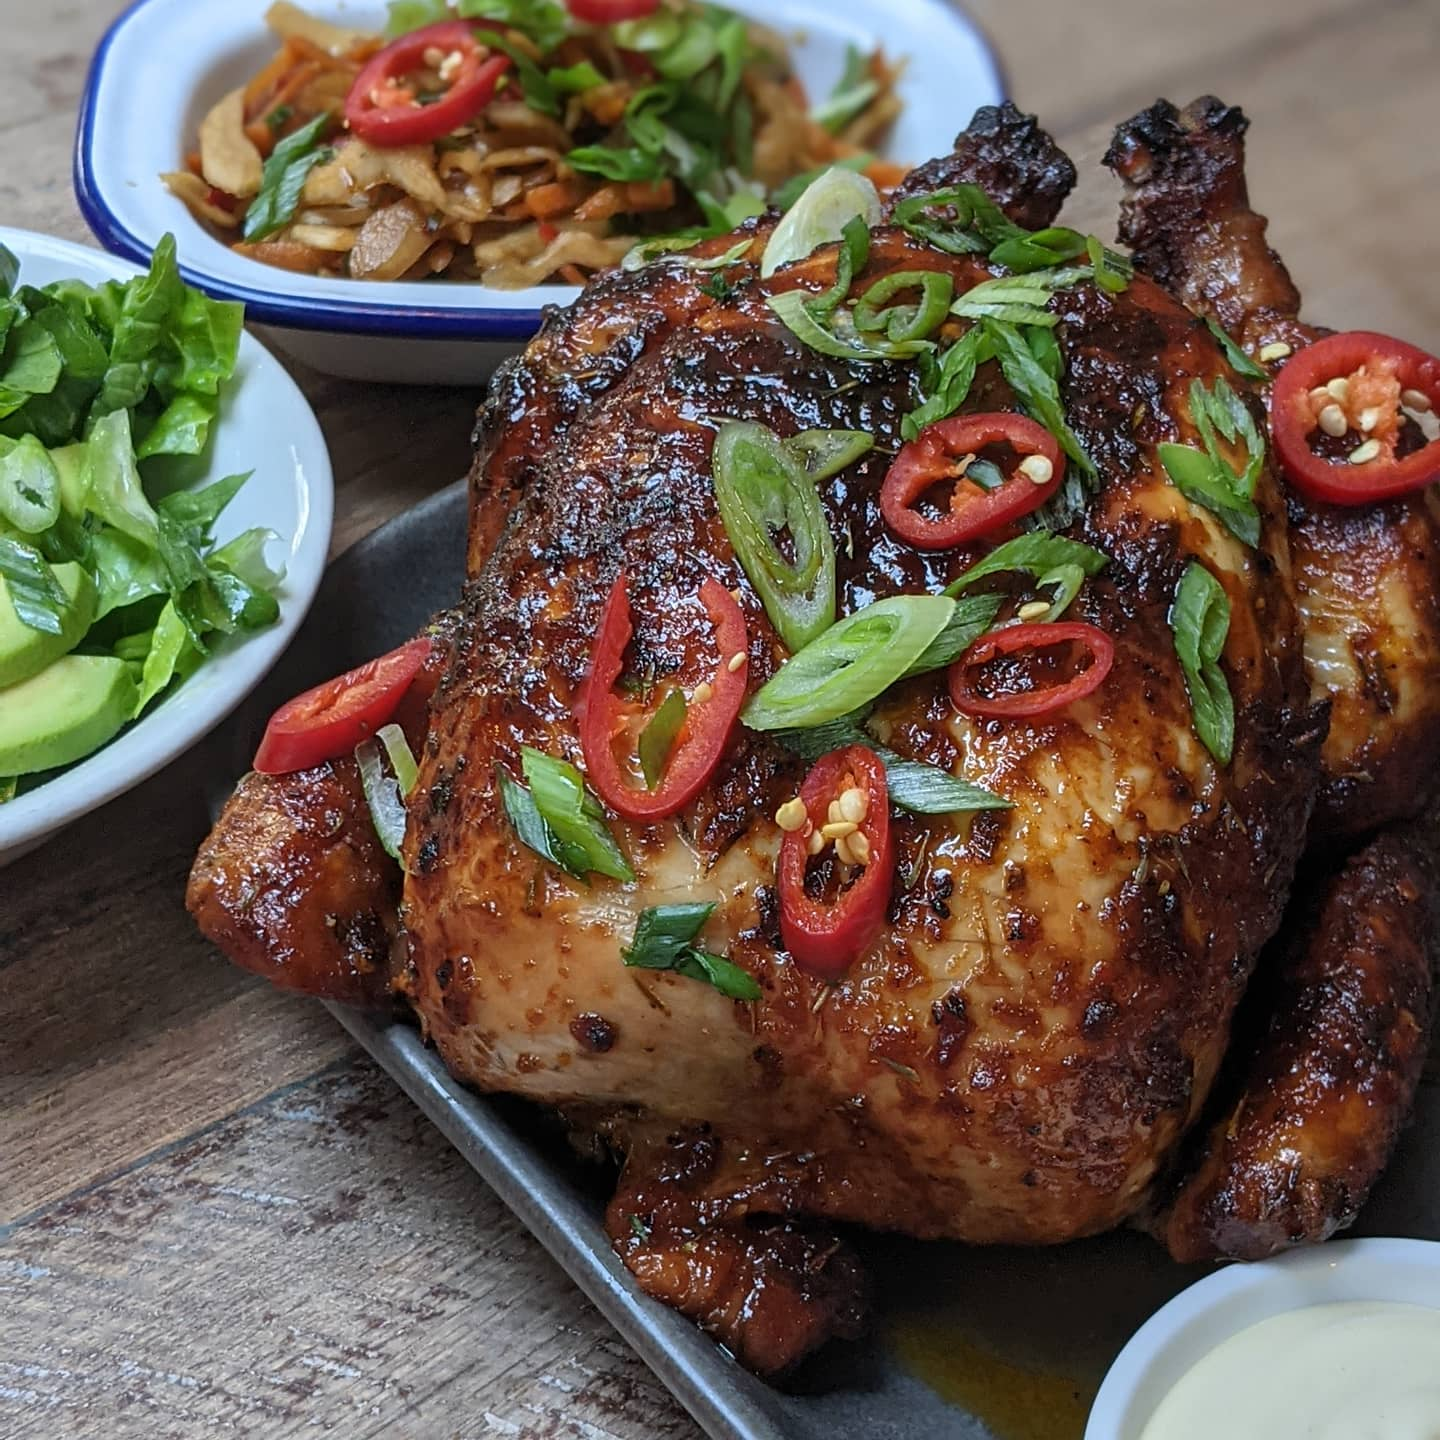 This insanely tender, 24 hour marinaded, rotisserie slow cooked chicken is half price on Tuesdays... Just sayin' 🤤 . . . #chickentuesdays #halfprice #wholechicken #foodoffers #tuesdaymood✔️ #tuesdayvibes #tuesdayfooddeals #hackneypubs #hackneyfoodie #hackneyfooddeal #chickenwings🍗 #outdoordrinking #outdoorseatingarea #terracegarden #beerlover #beergarden